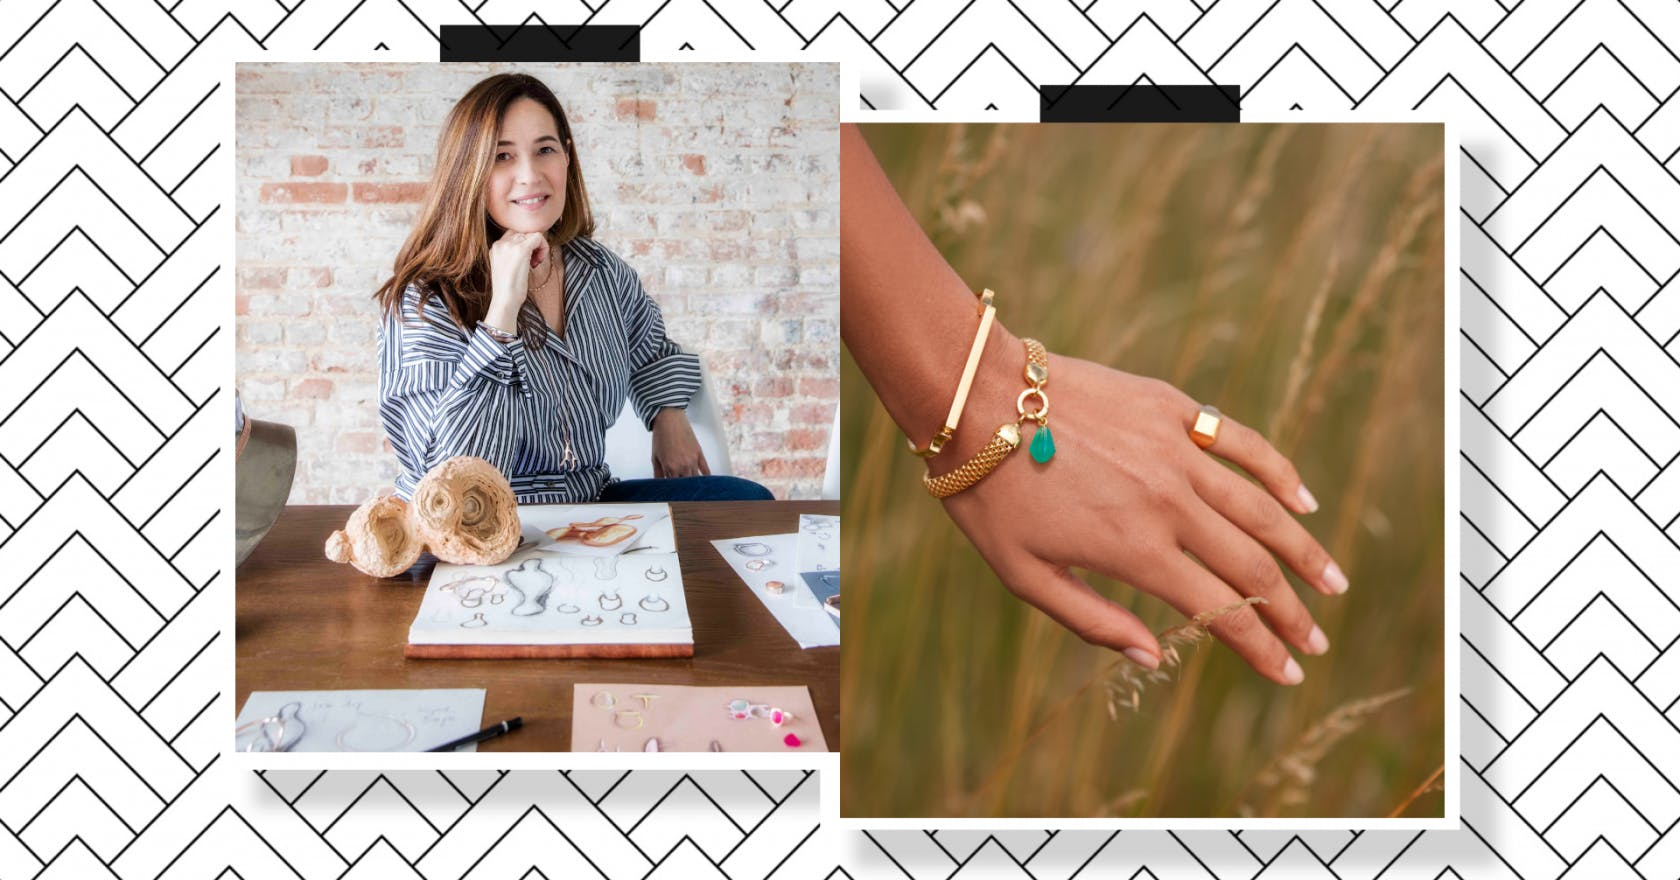 3 easy ways to shop more sustainably, according to Monica Vinader